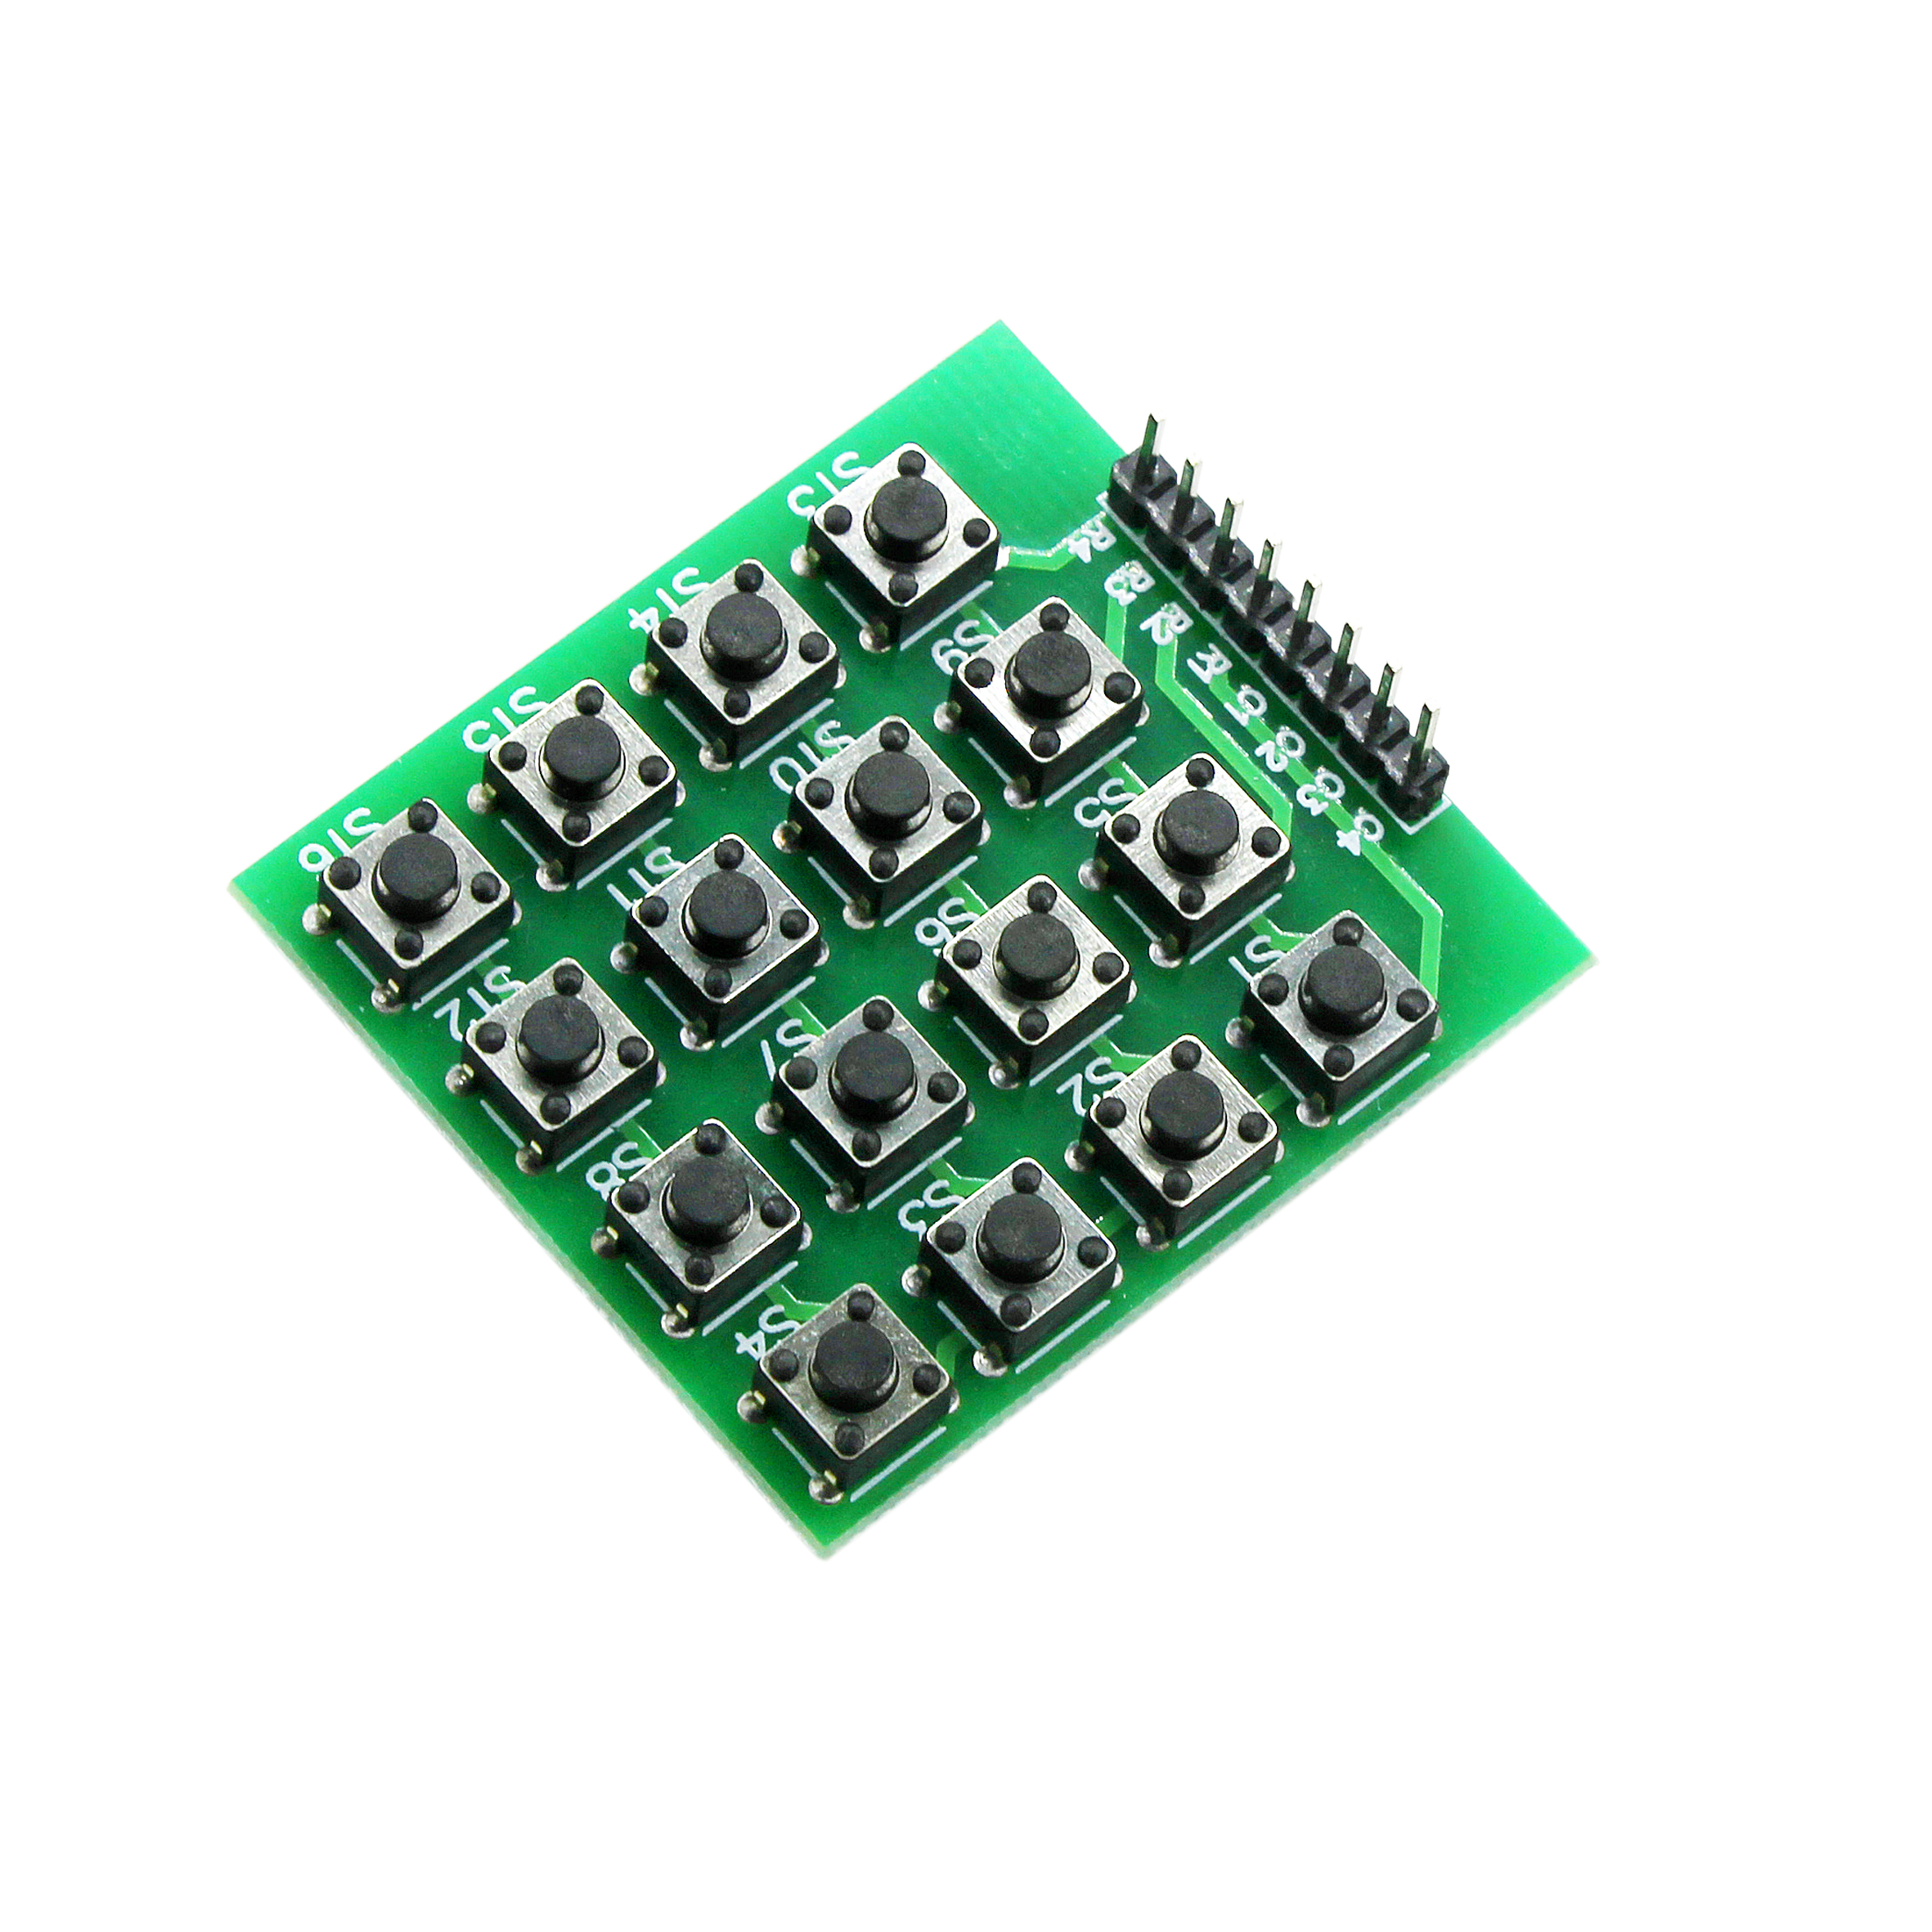 8pin 4x4 4*4 Matrix 16 Keys Button Keypad Keyboard Breadboard Module MCU For Arduino Diy Kit